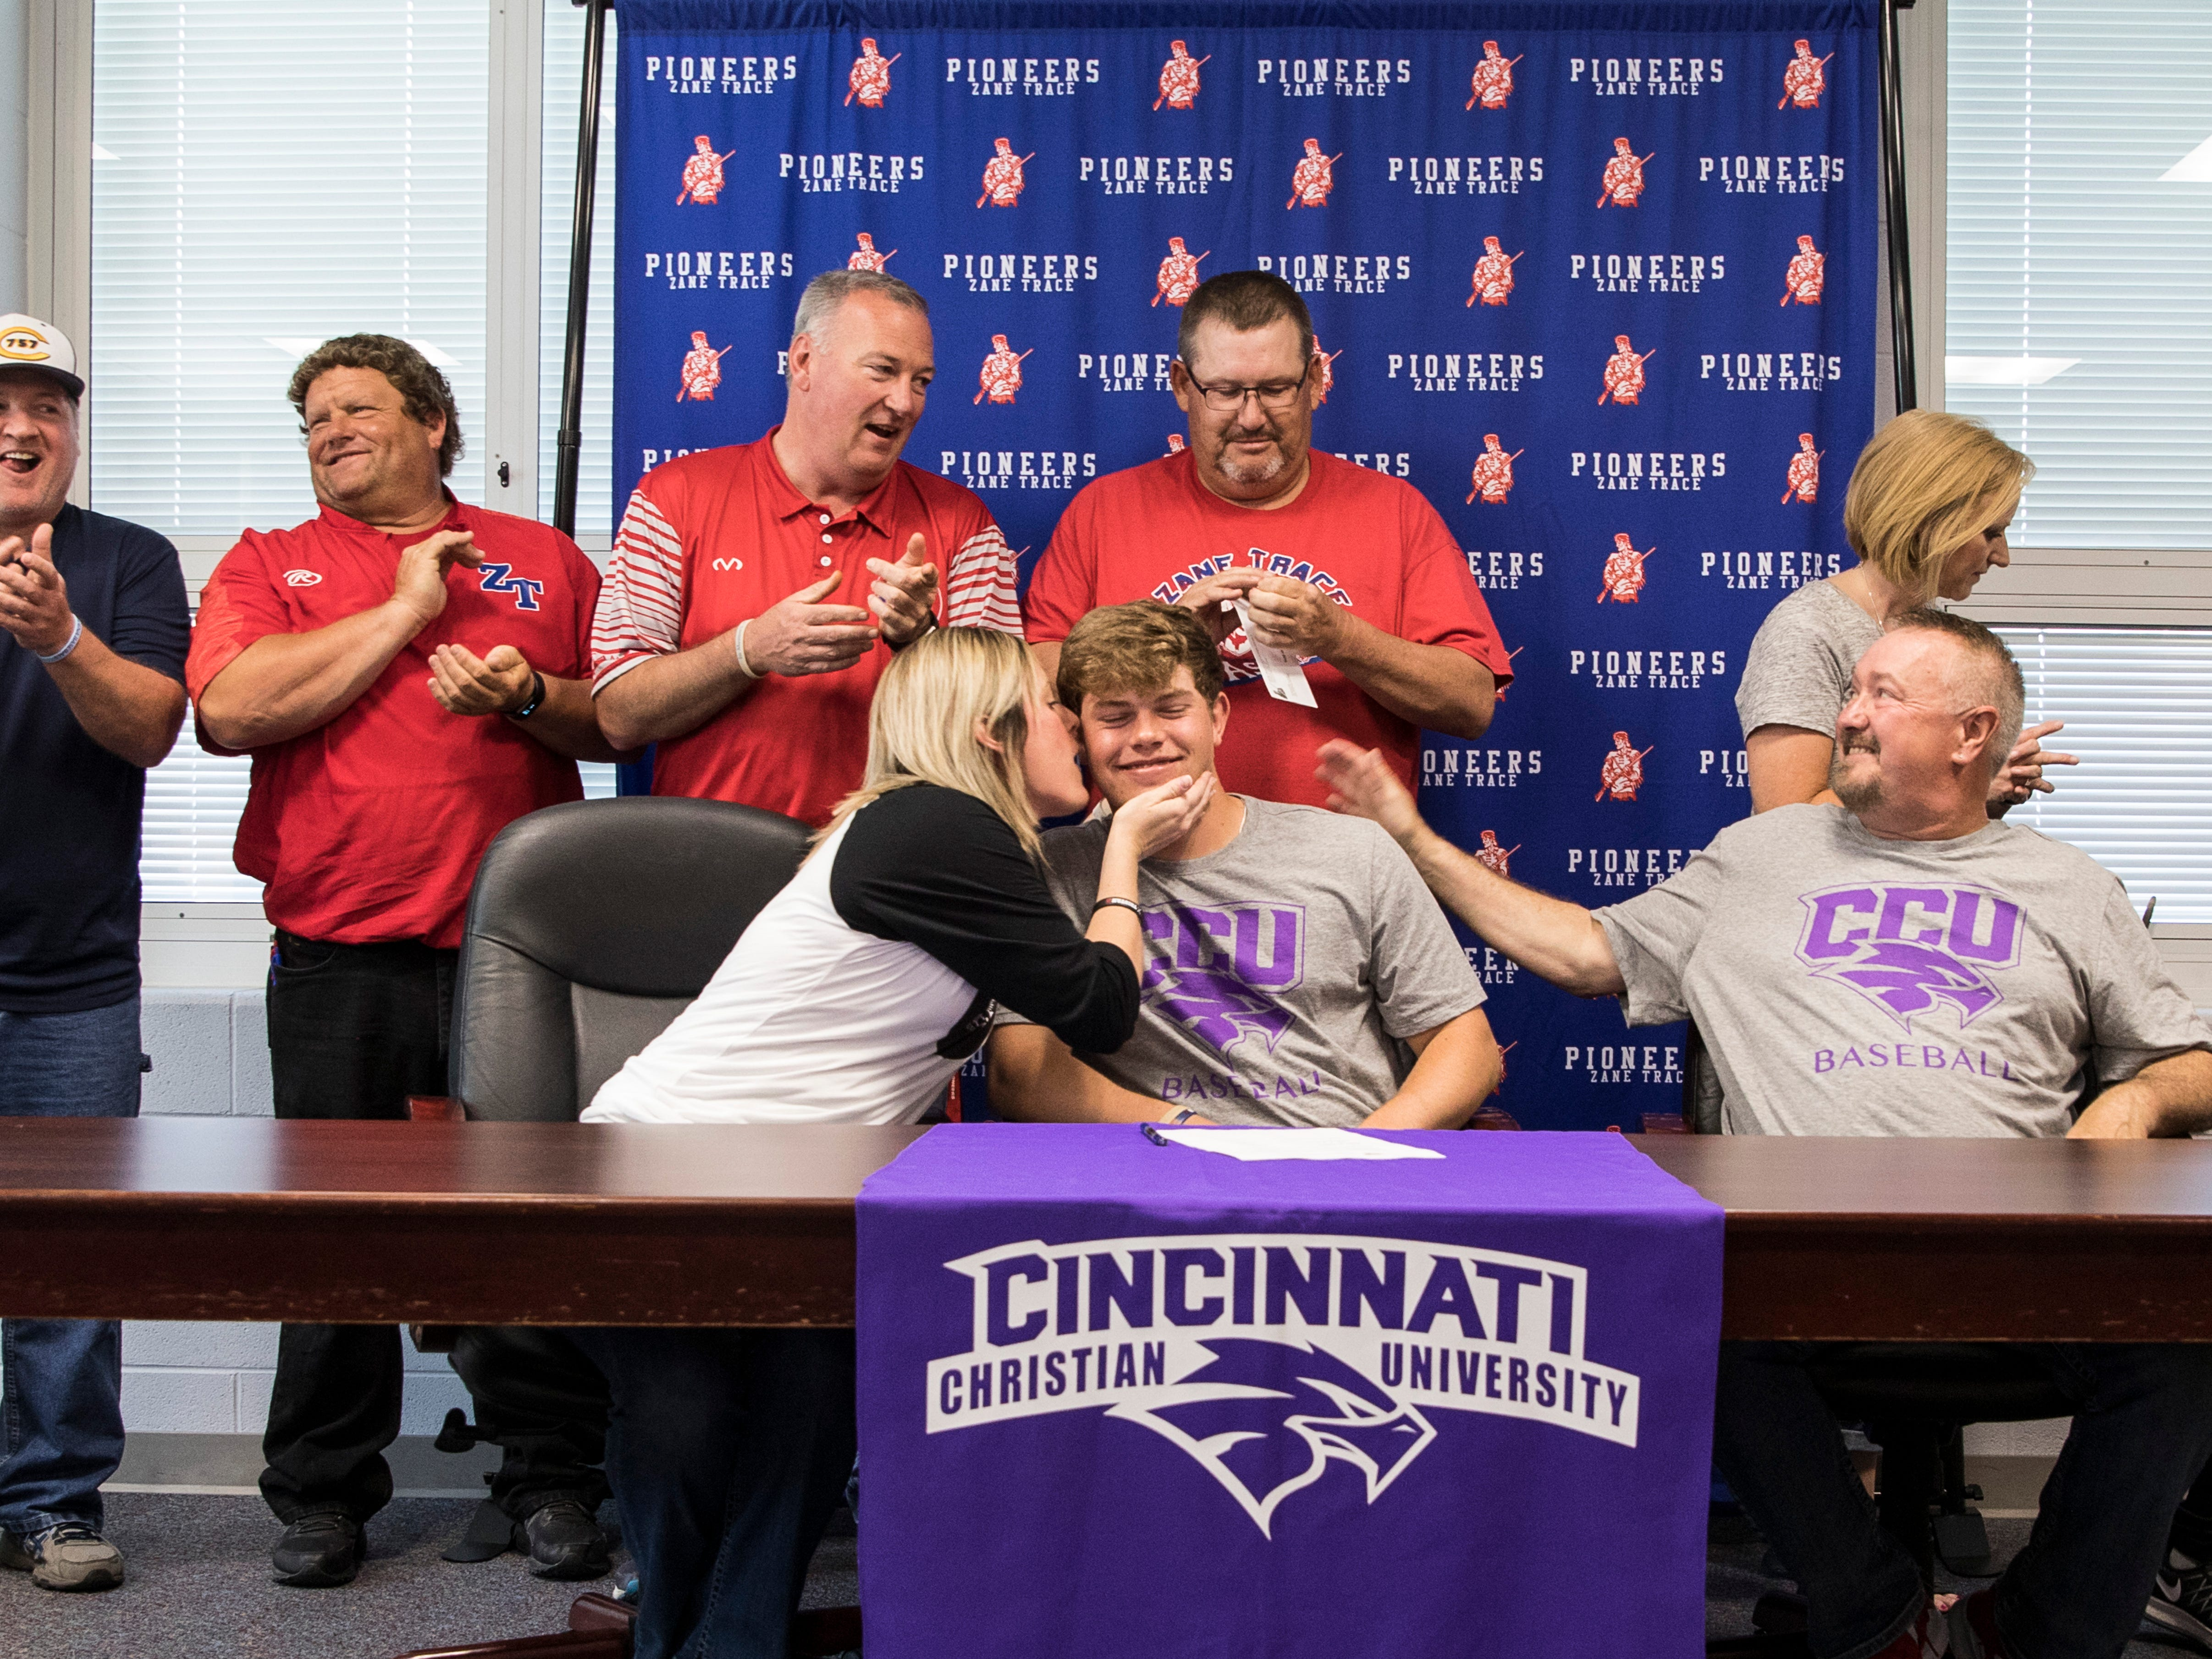 Zane Trace senior Chad Ison gets a kiss from his mother Sharie Betts McNeely after officially signing to play baseball for Cincinnati Christian University on May 2, 2019 at Zane Trace High School.